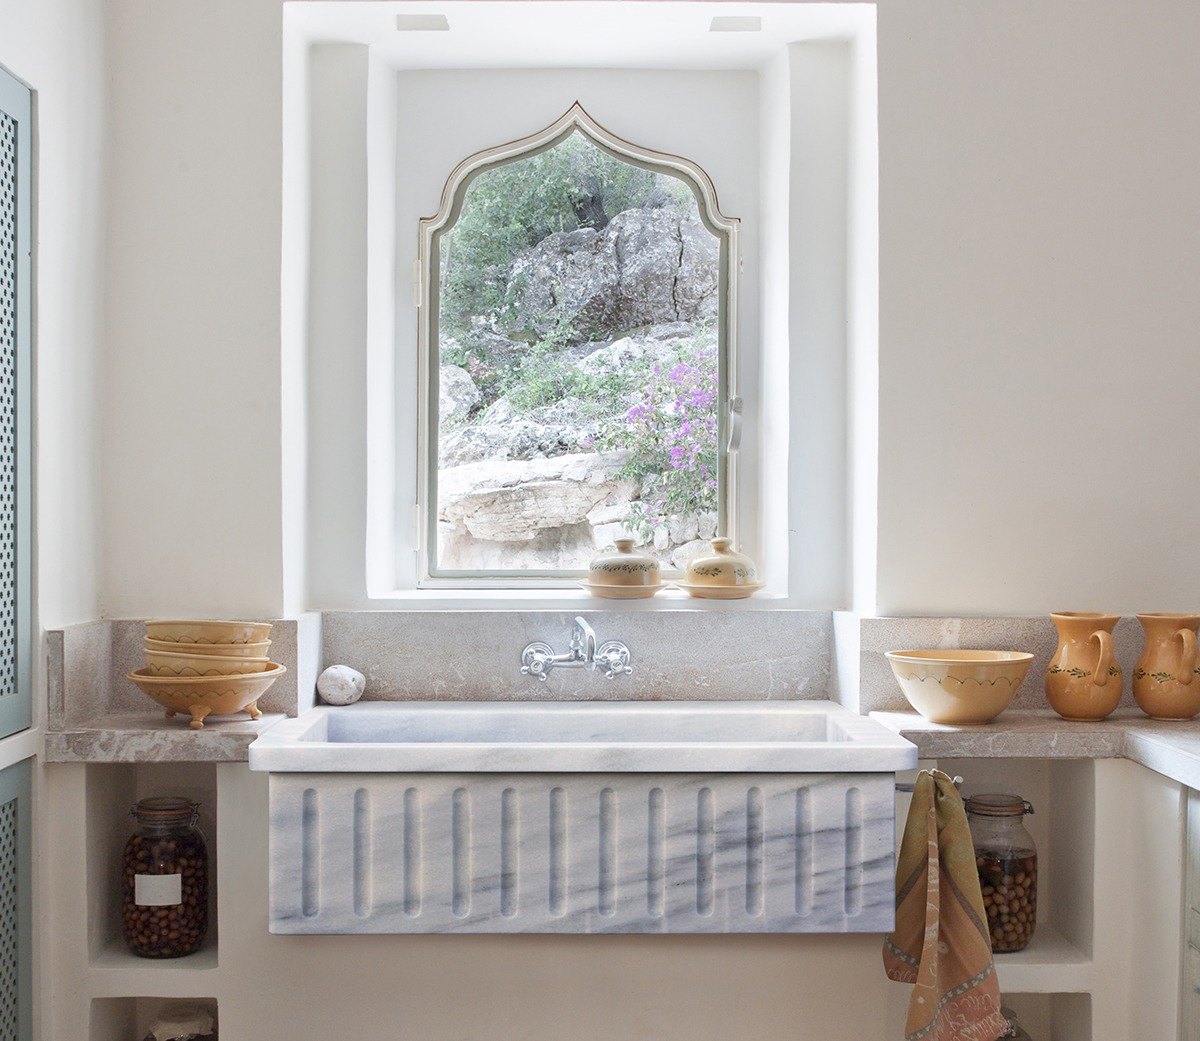 Marble Kitchen Sink, overmounted - The French House